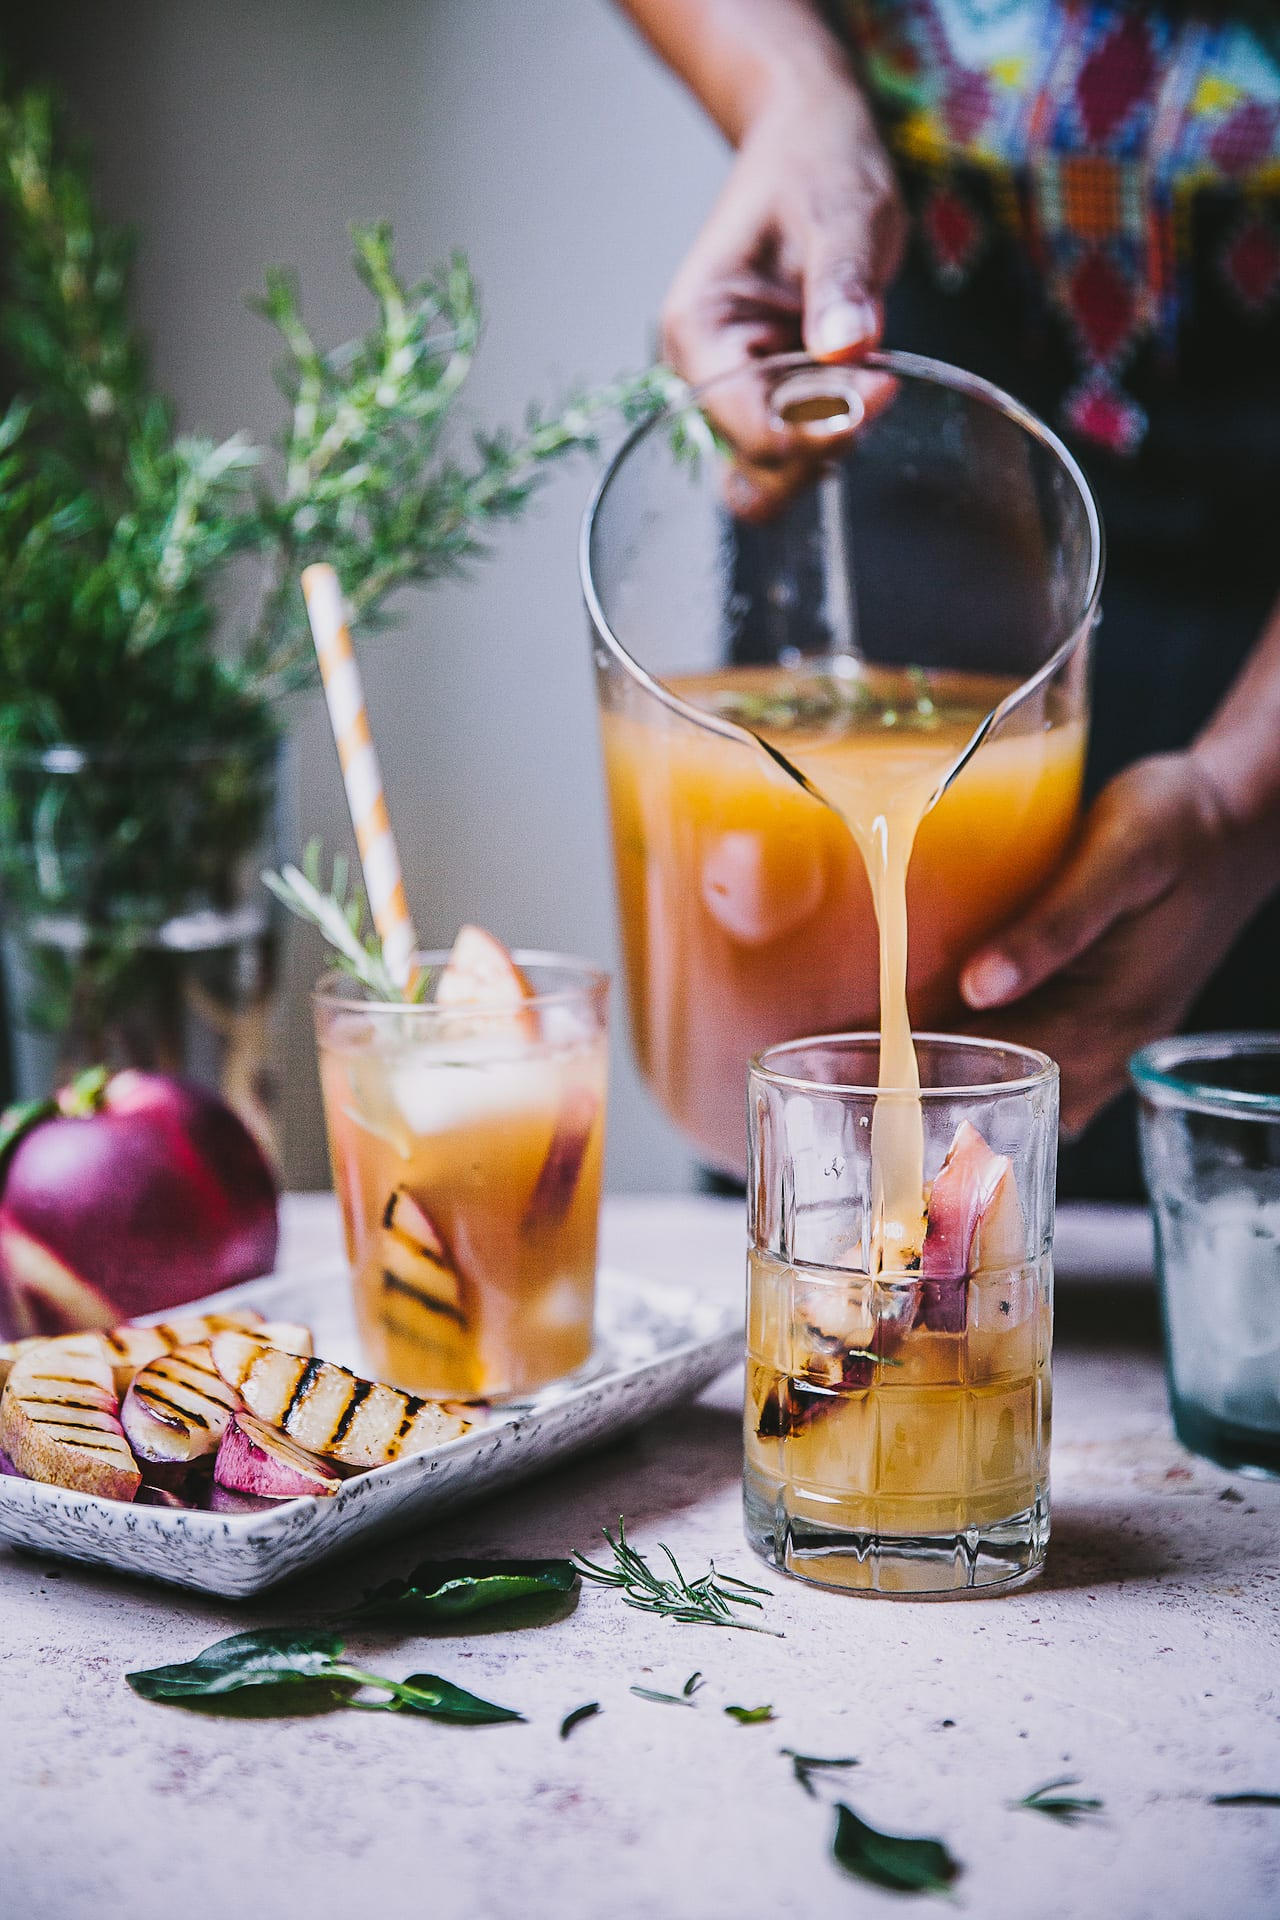 Grilled Nectarine Rosemary Iced Tea | Playful Cooking #summer #drinks #foodphotography #iced #tea #nectarine #rosemary